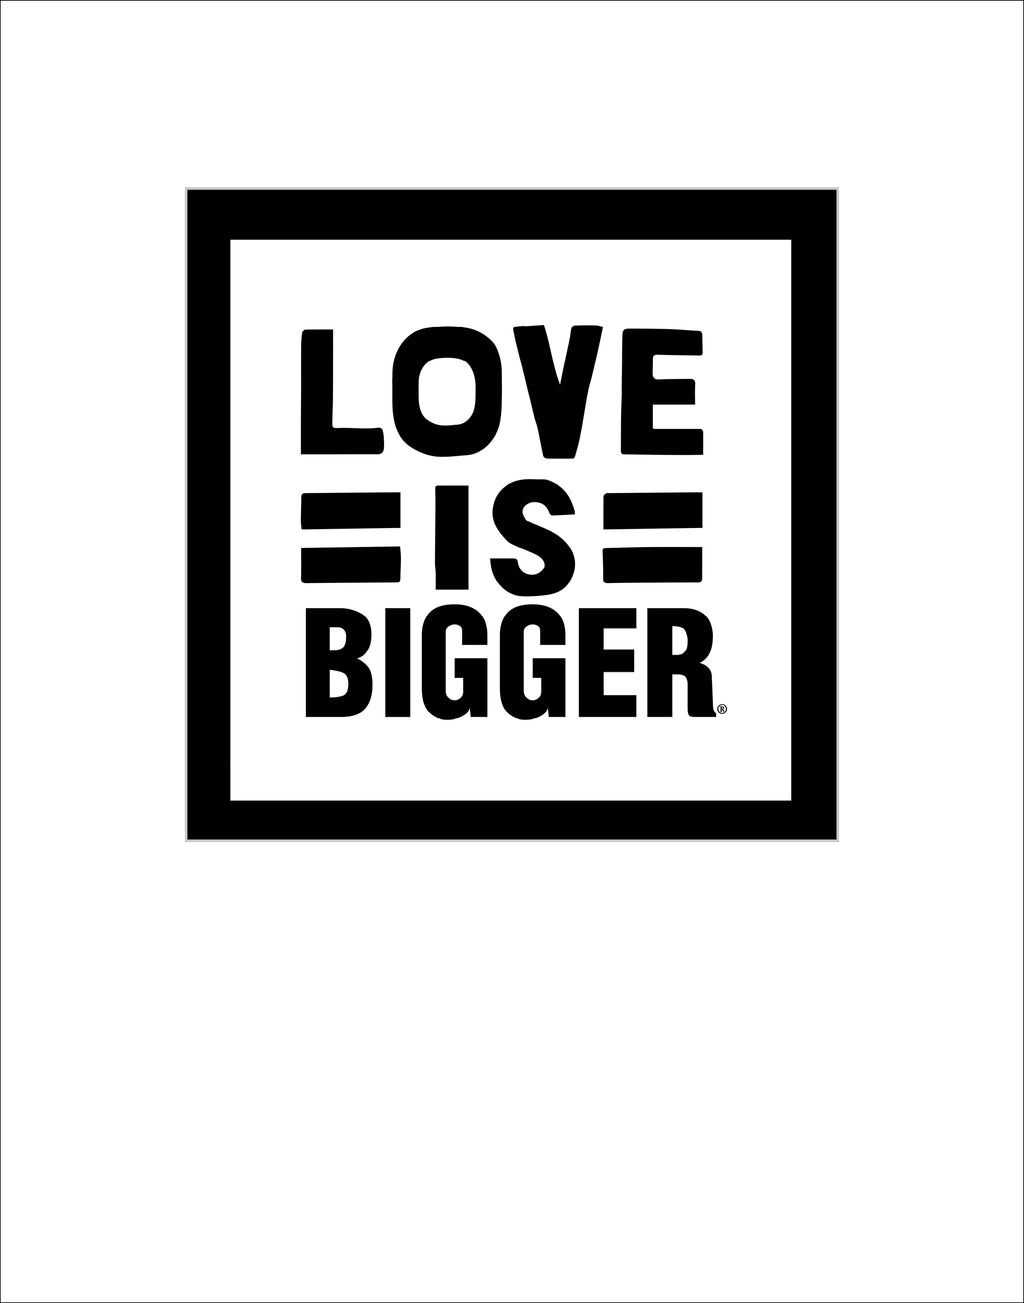 Love Is Bigger Print WB